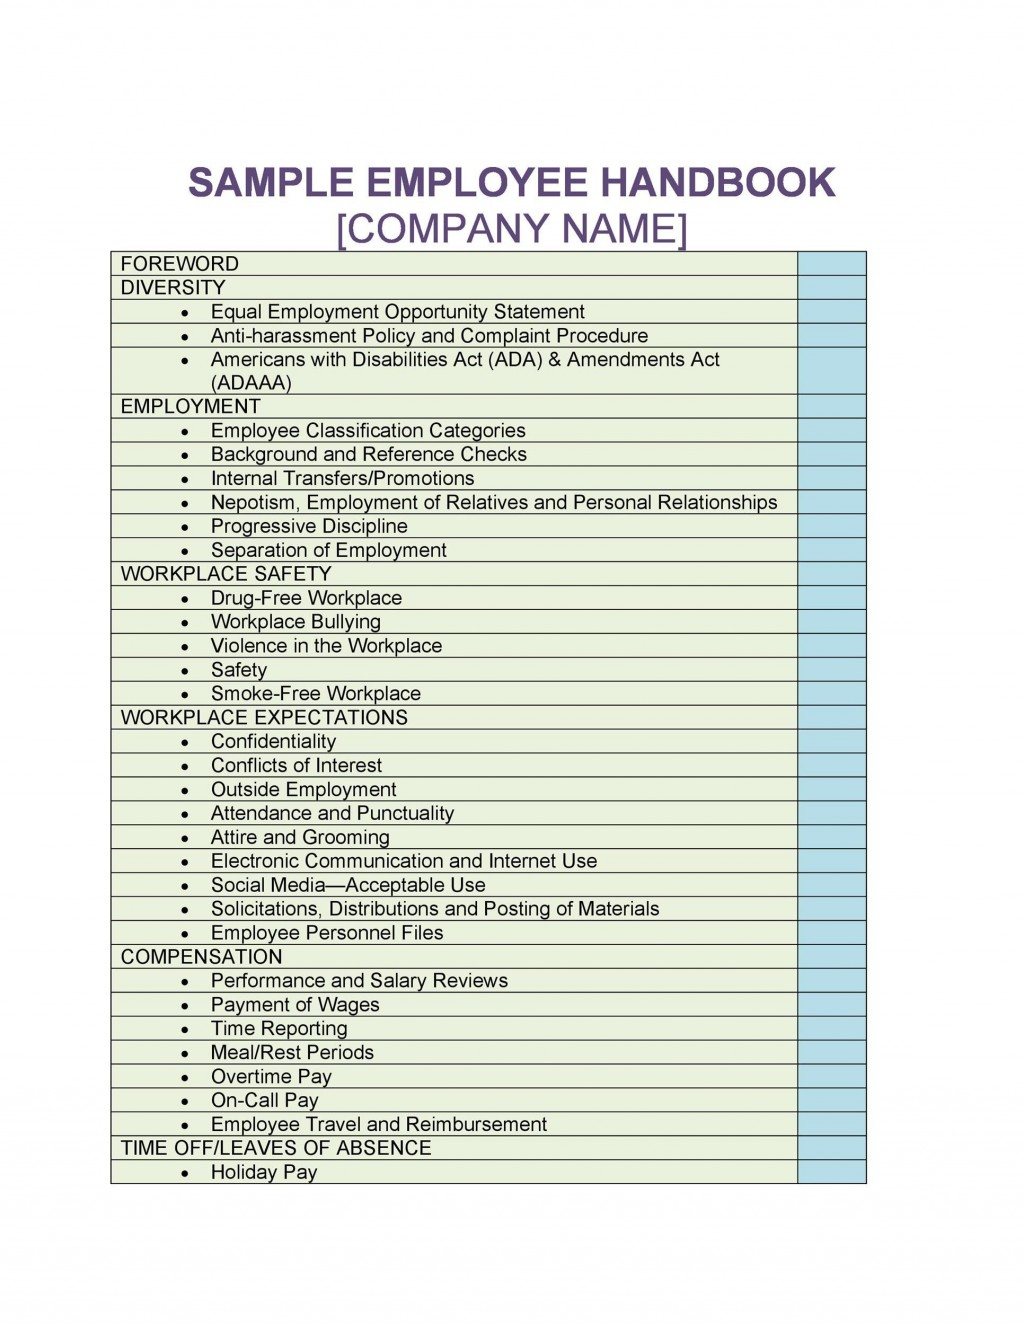 005 Staggering Employee Handbook Template Free Concept  Restaurant Download Induction Manual Sample In SingaporeLarge